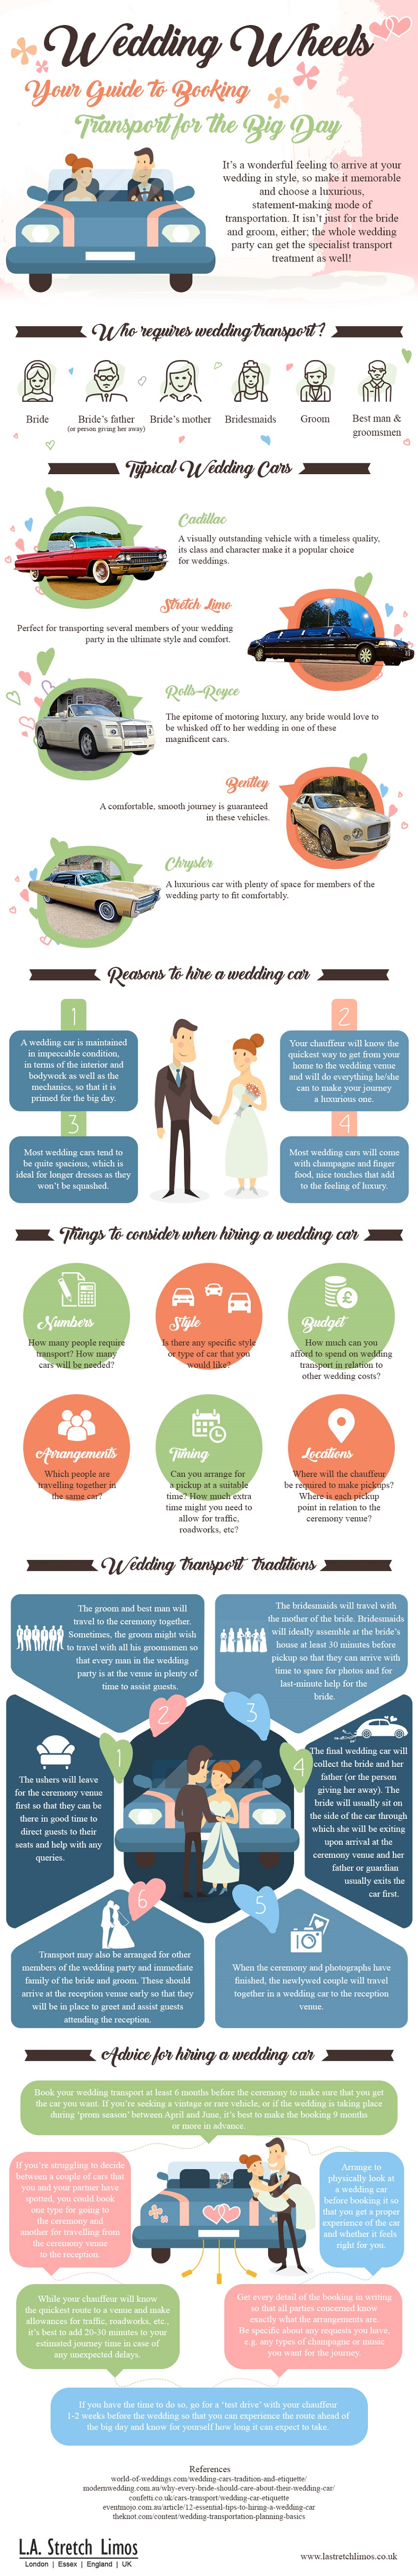 Wedding Wheels: Your Guide to Transport for the Big Day Infographic